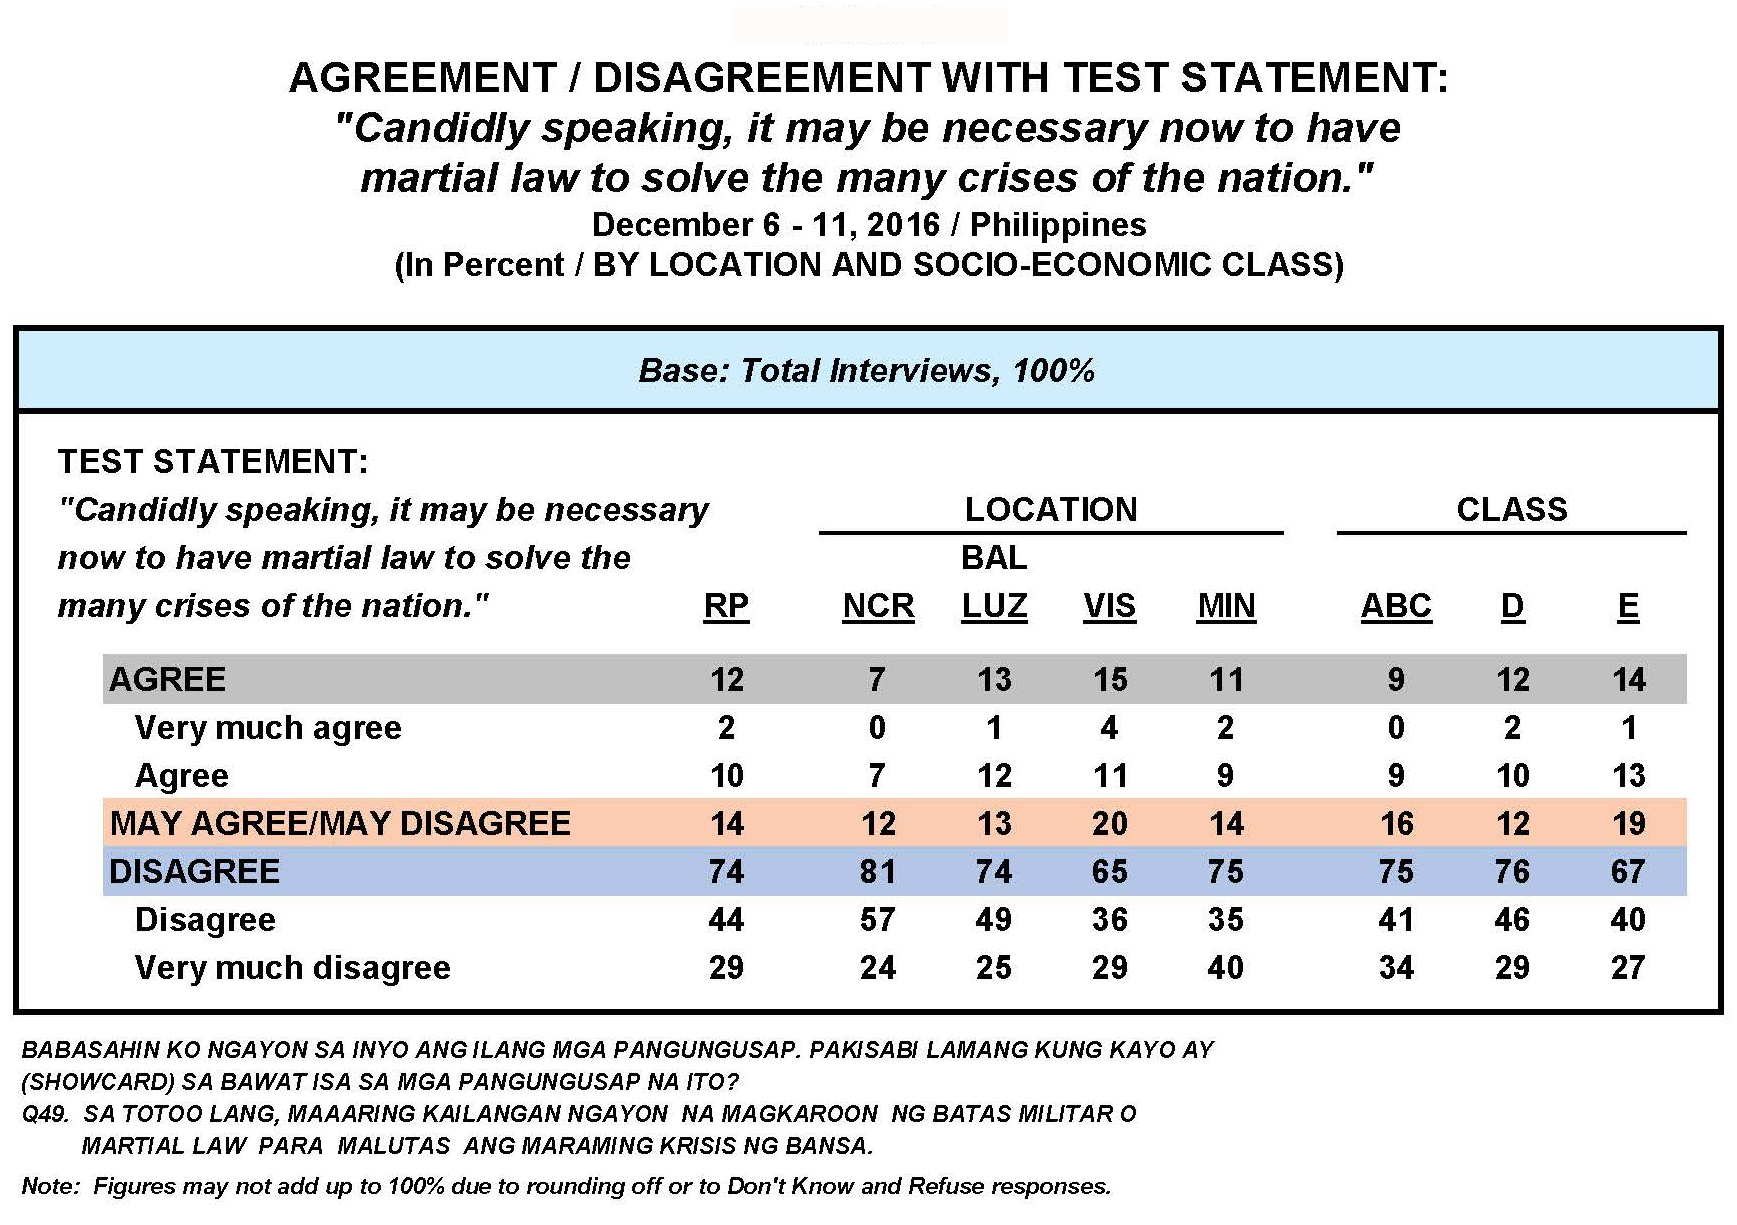 December 2016 Nationwide Survey on Martial Law